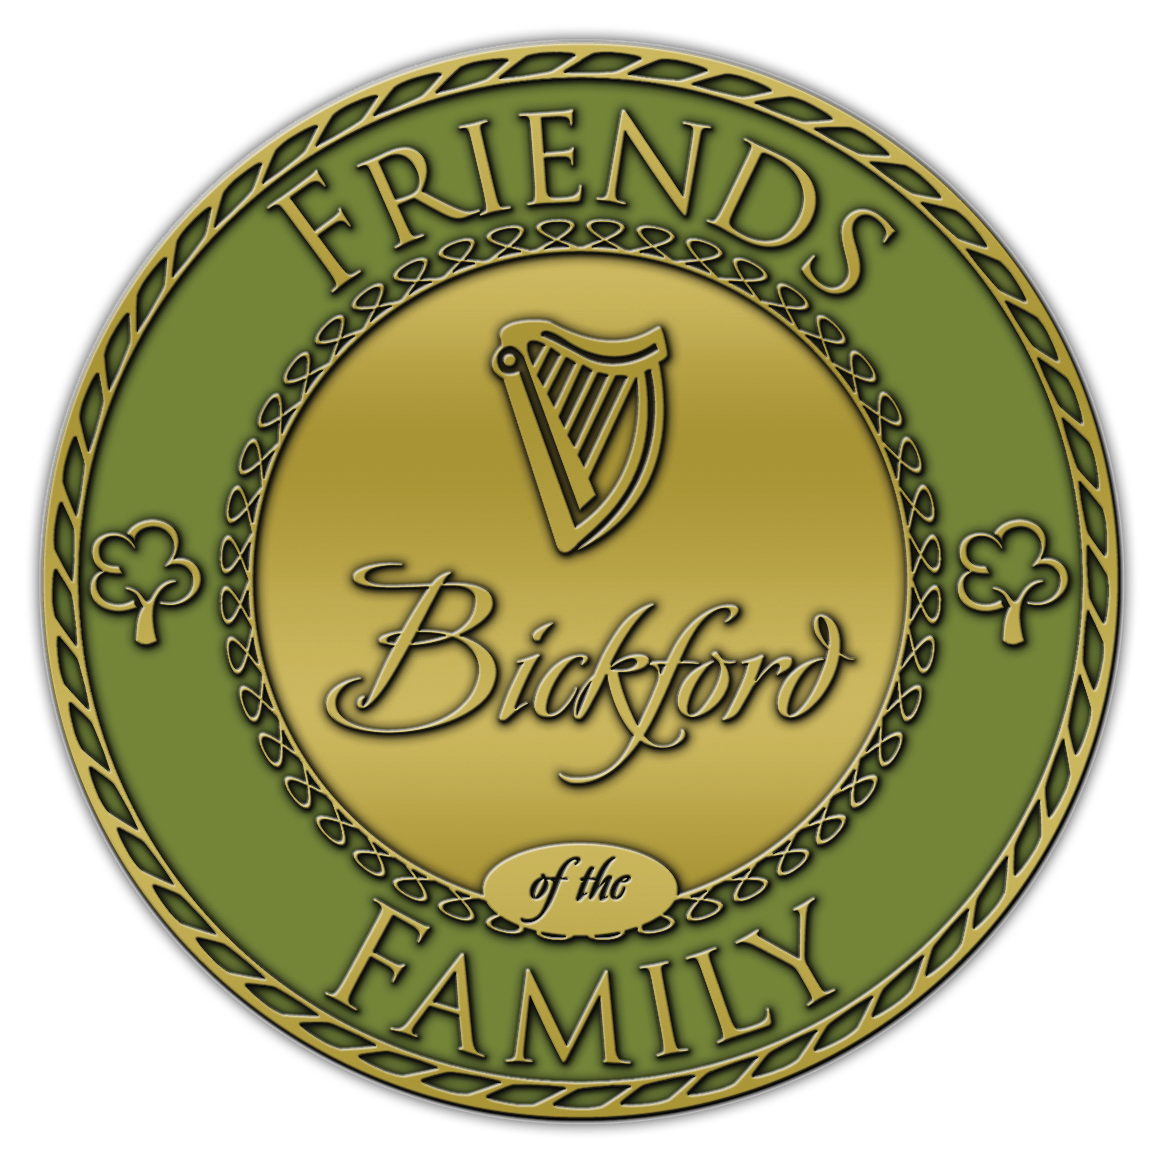 Bickford friends of the family club